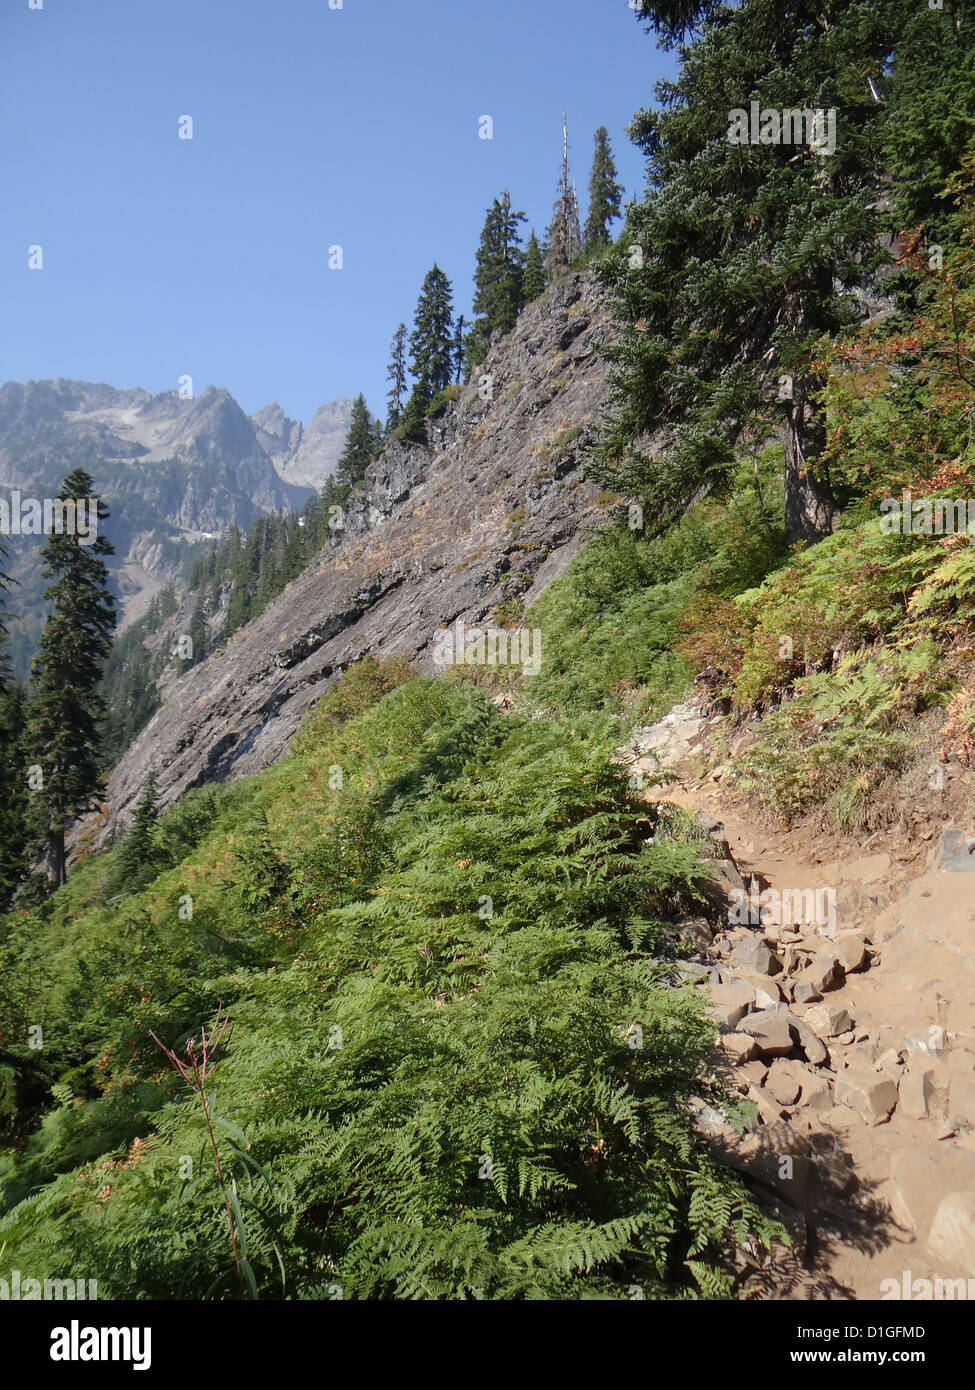 Hikers climbing steep mountain trail with switchbacks near Snoqualmie Pass, Washington  - Stock Image